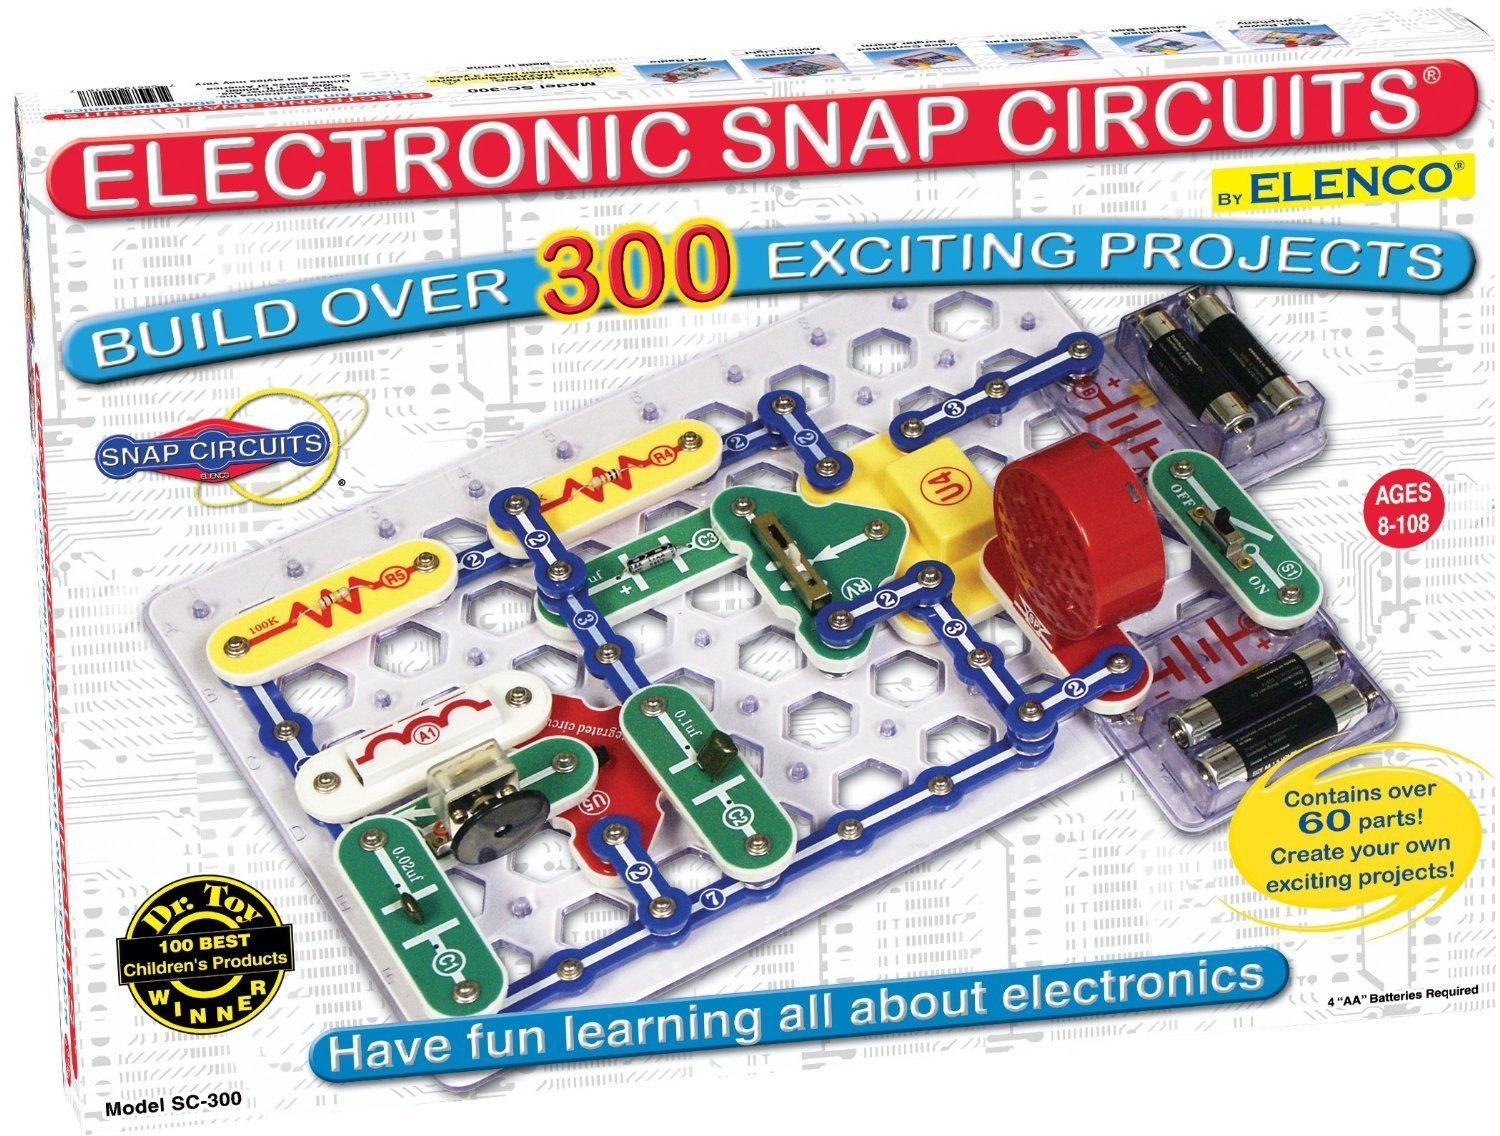 Snap Circuits are FANTASTIC gifts for kids!